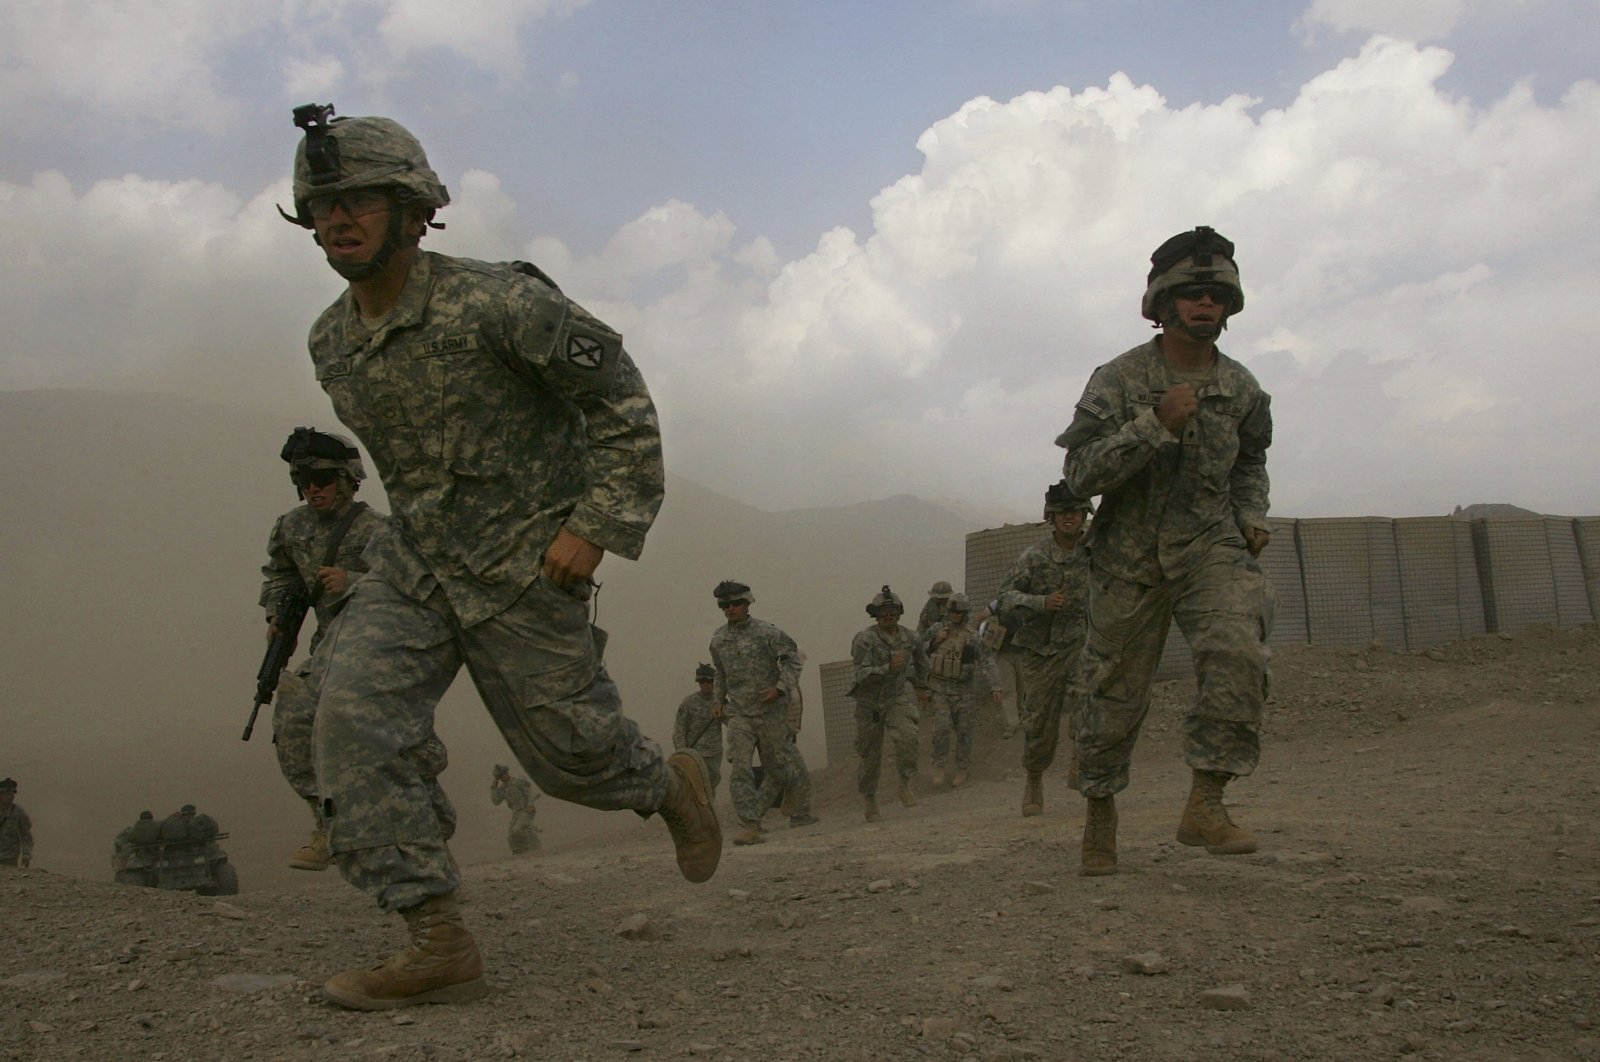 U.S. soldiers run to quickly unload a supply helicopter between Taliban rocket attacks, at Camp Tillman in the Paktika province of eastern Afghanistan, Oct. 24, 2006. (Photo by Getty Images)